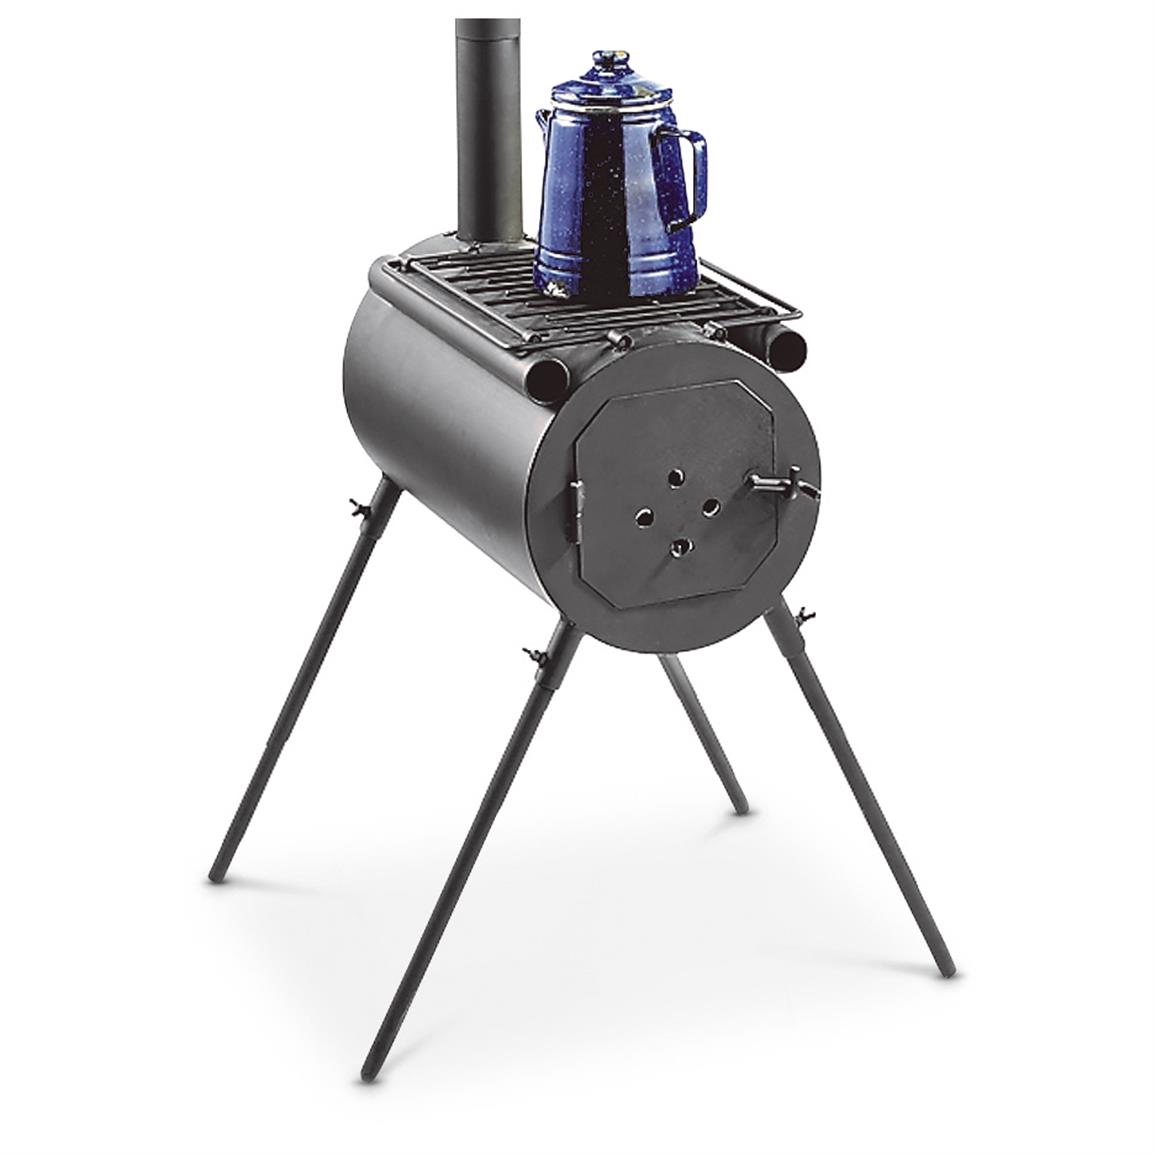 HQ ISSUE キャンプ用 ストーブ 暖房 Camp Stove